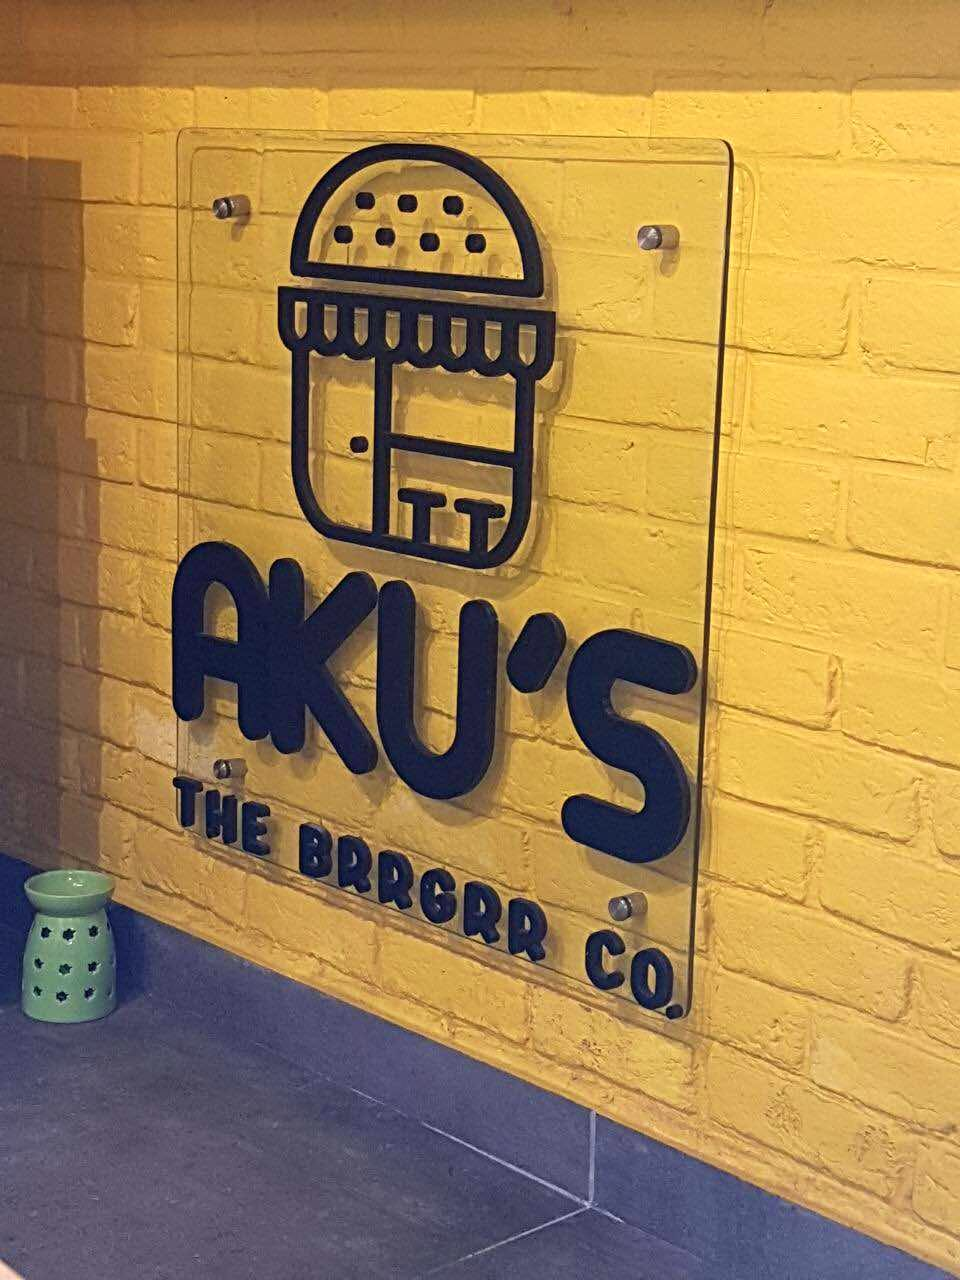 image - AKU's - The Brrgrr Co.